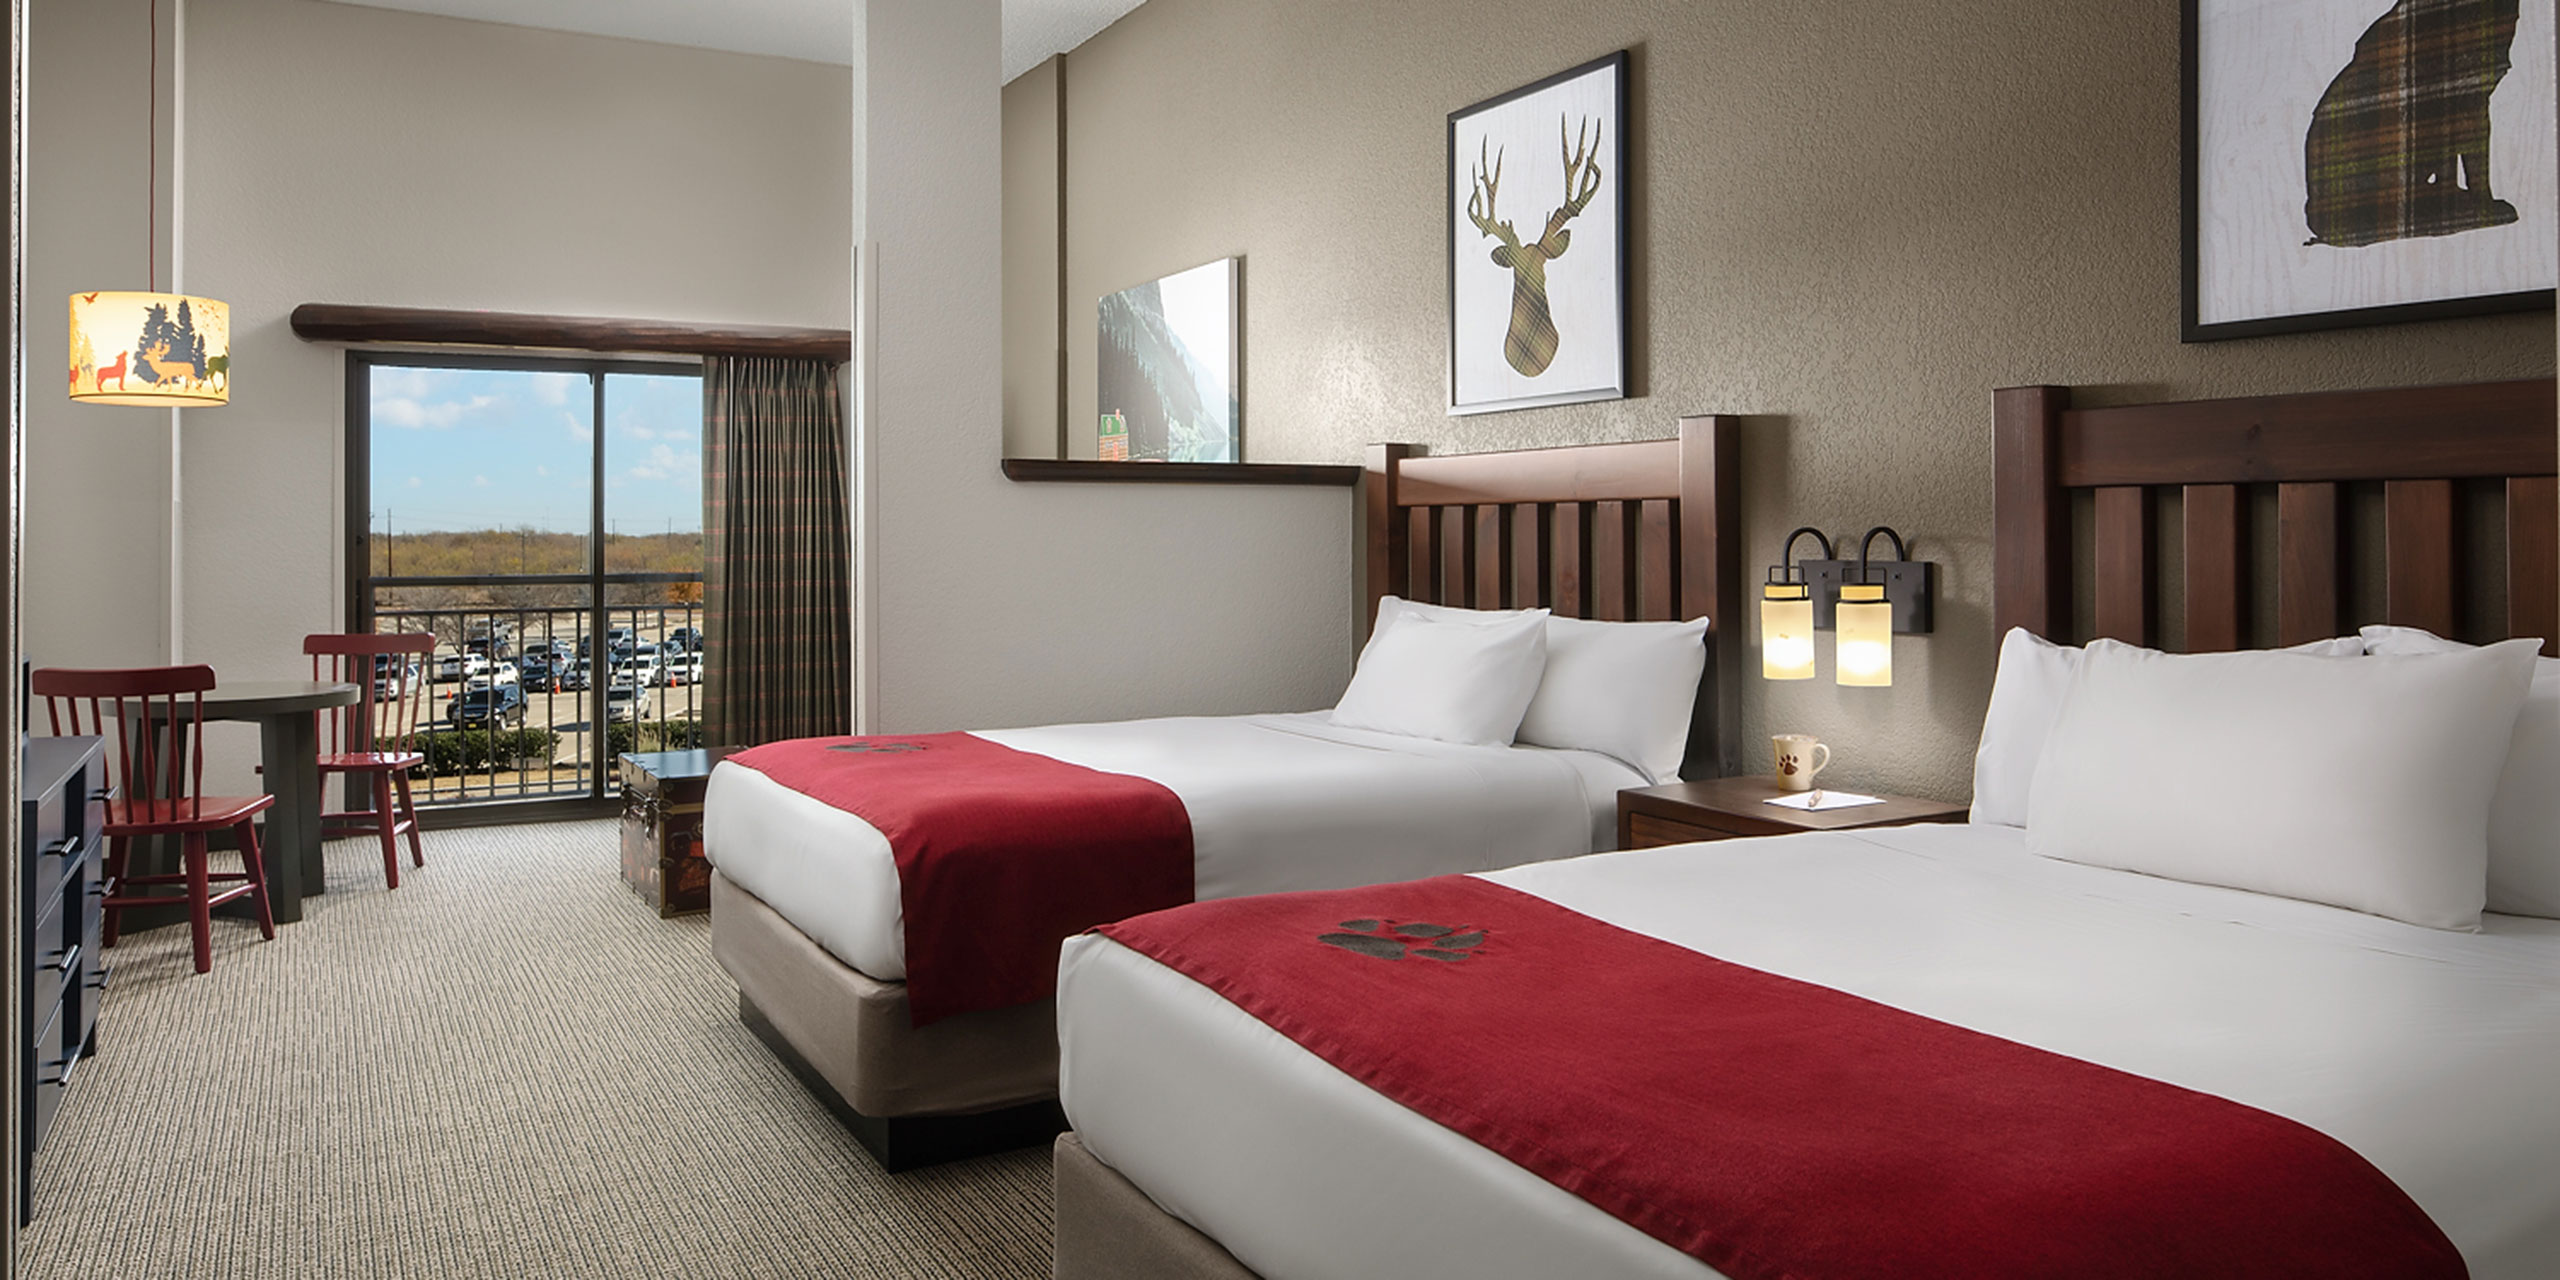 Guestroom Renovations at Great Wolf Lodge in the Pocono Mountains; Courtesy of Great Wolf Lodge